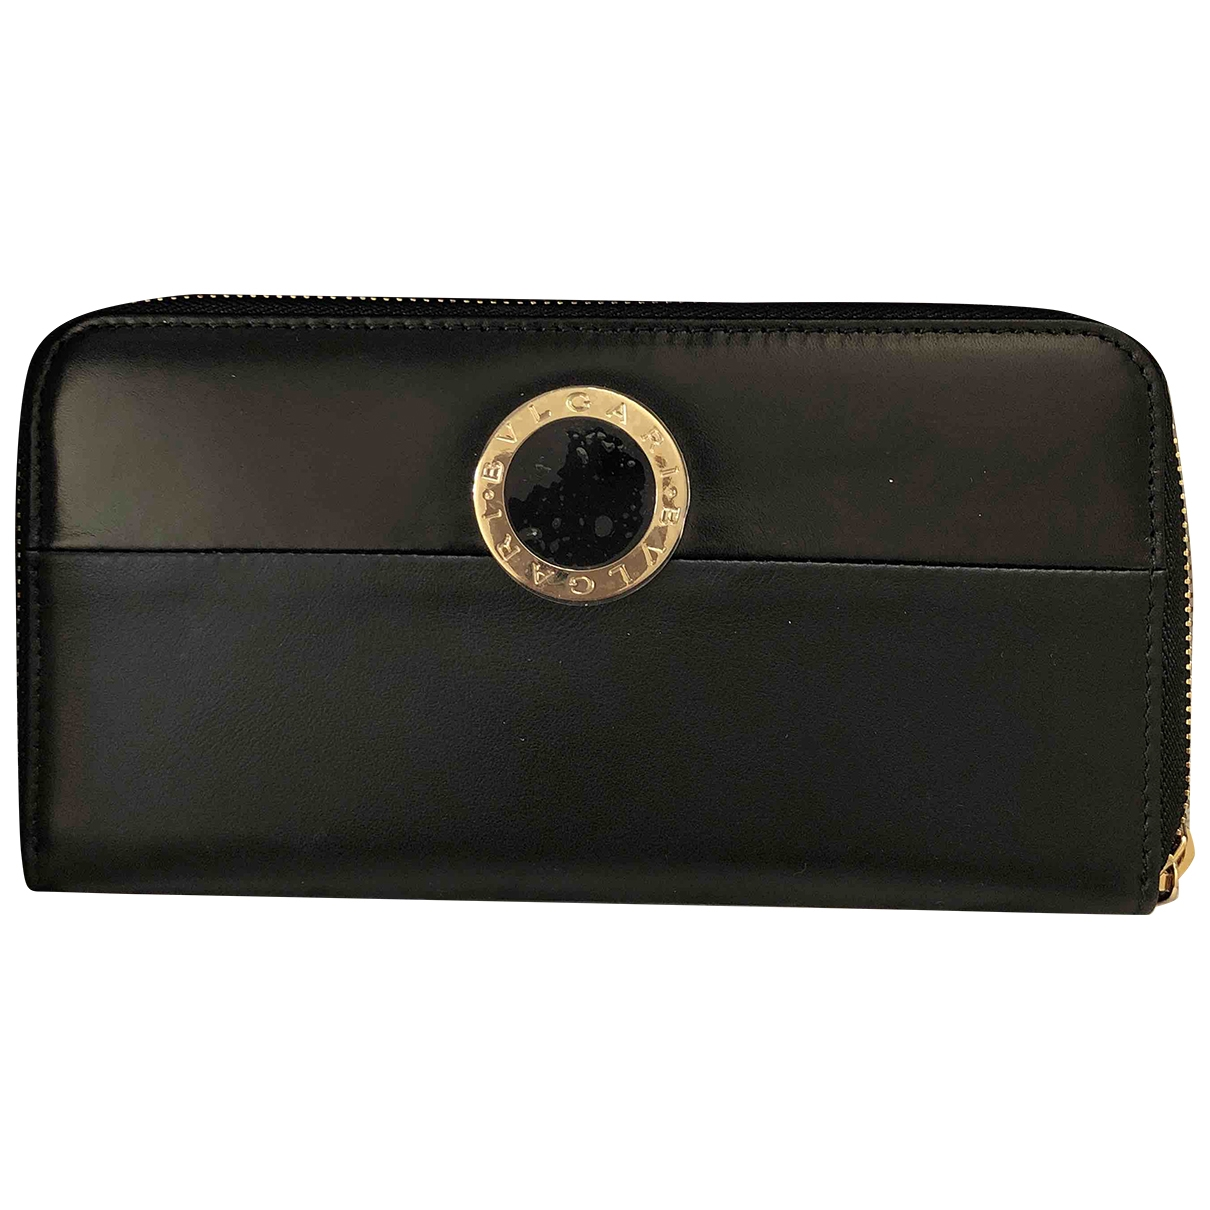 Bvlgari \N Black Leather wallet for Women \N